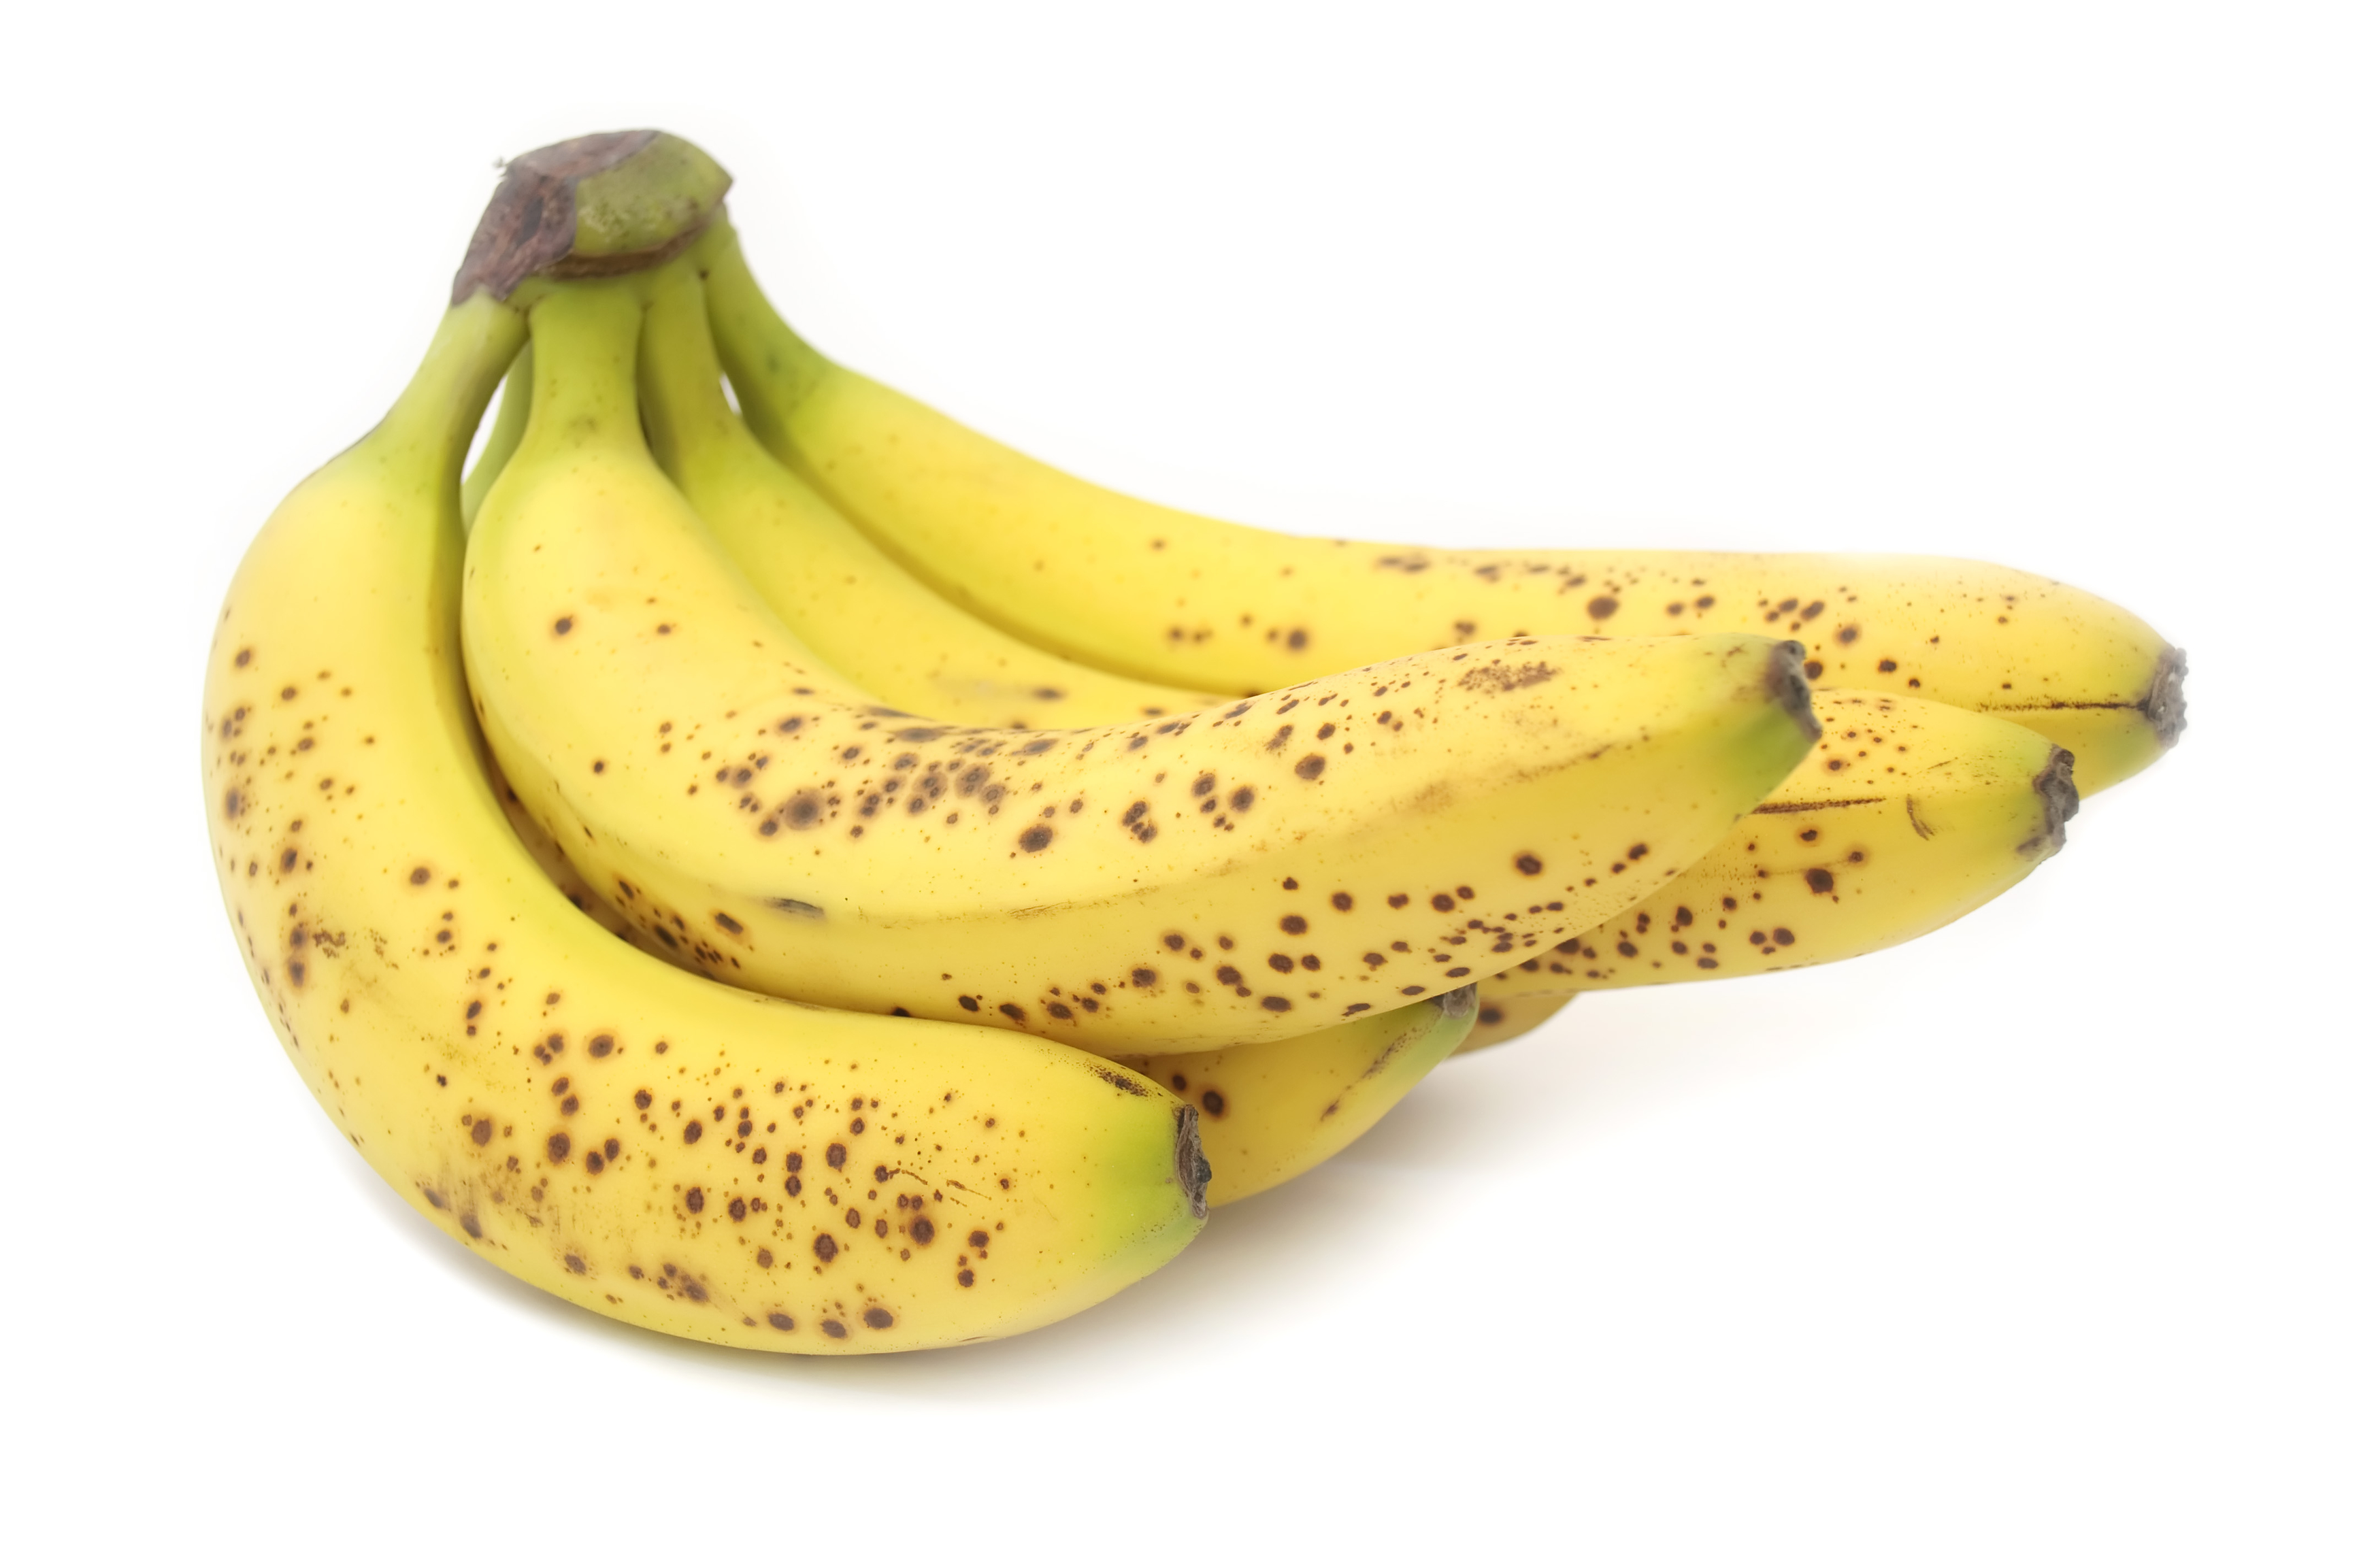 Bananas: How to Select, Store & Serve - The Produce Mom